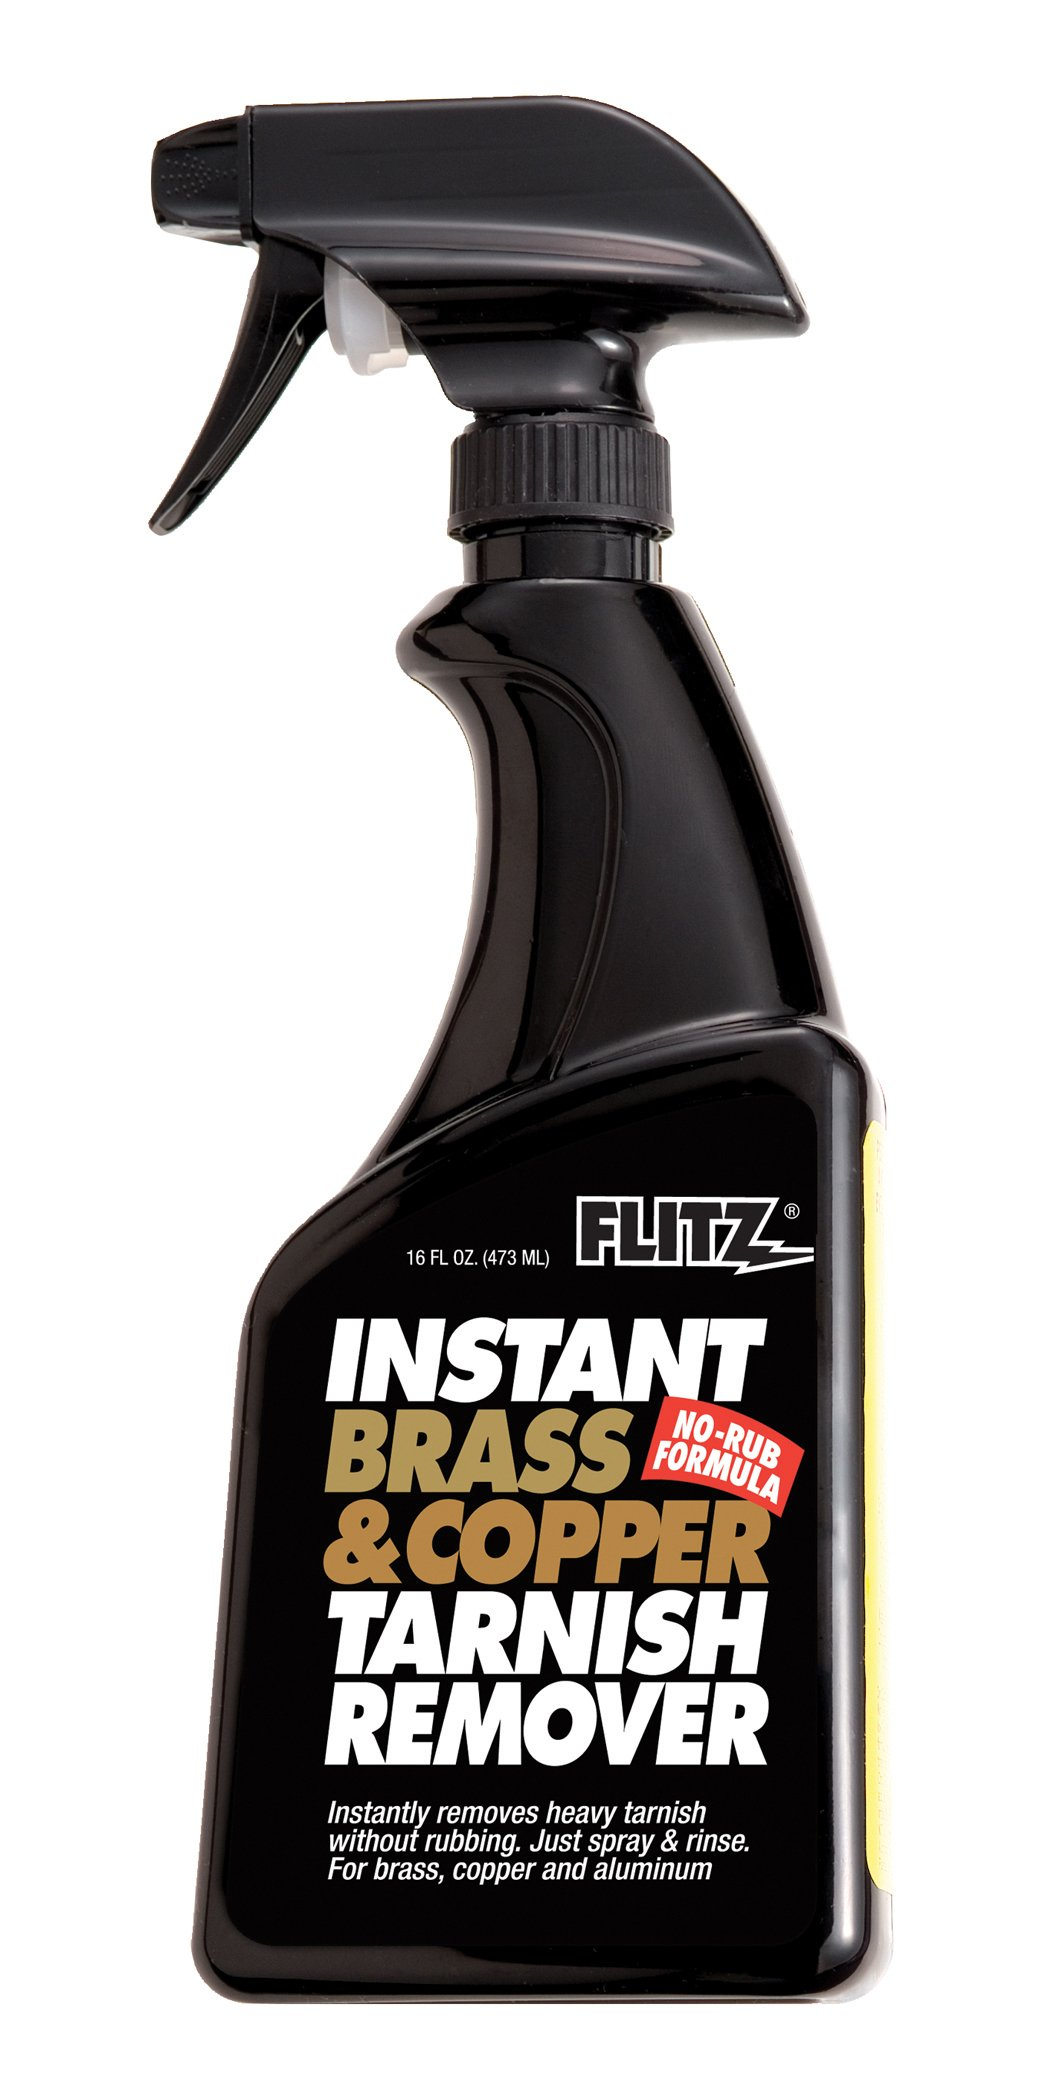 Flitz Brass and Copper Tarnish Remover, Powerful Organic Formula That Safely Removes Rust, Stains and Oxidation + Cleans Brick, Glass, Aluminum and More, Made in the USA, 16 oz Spray